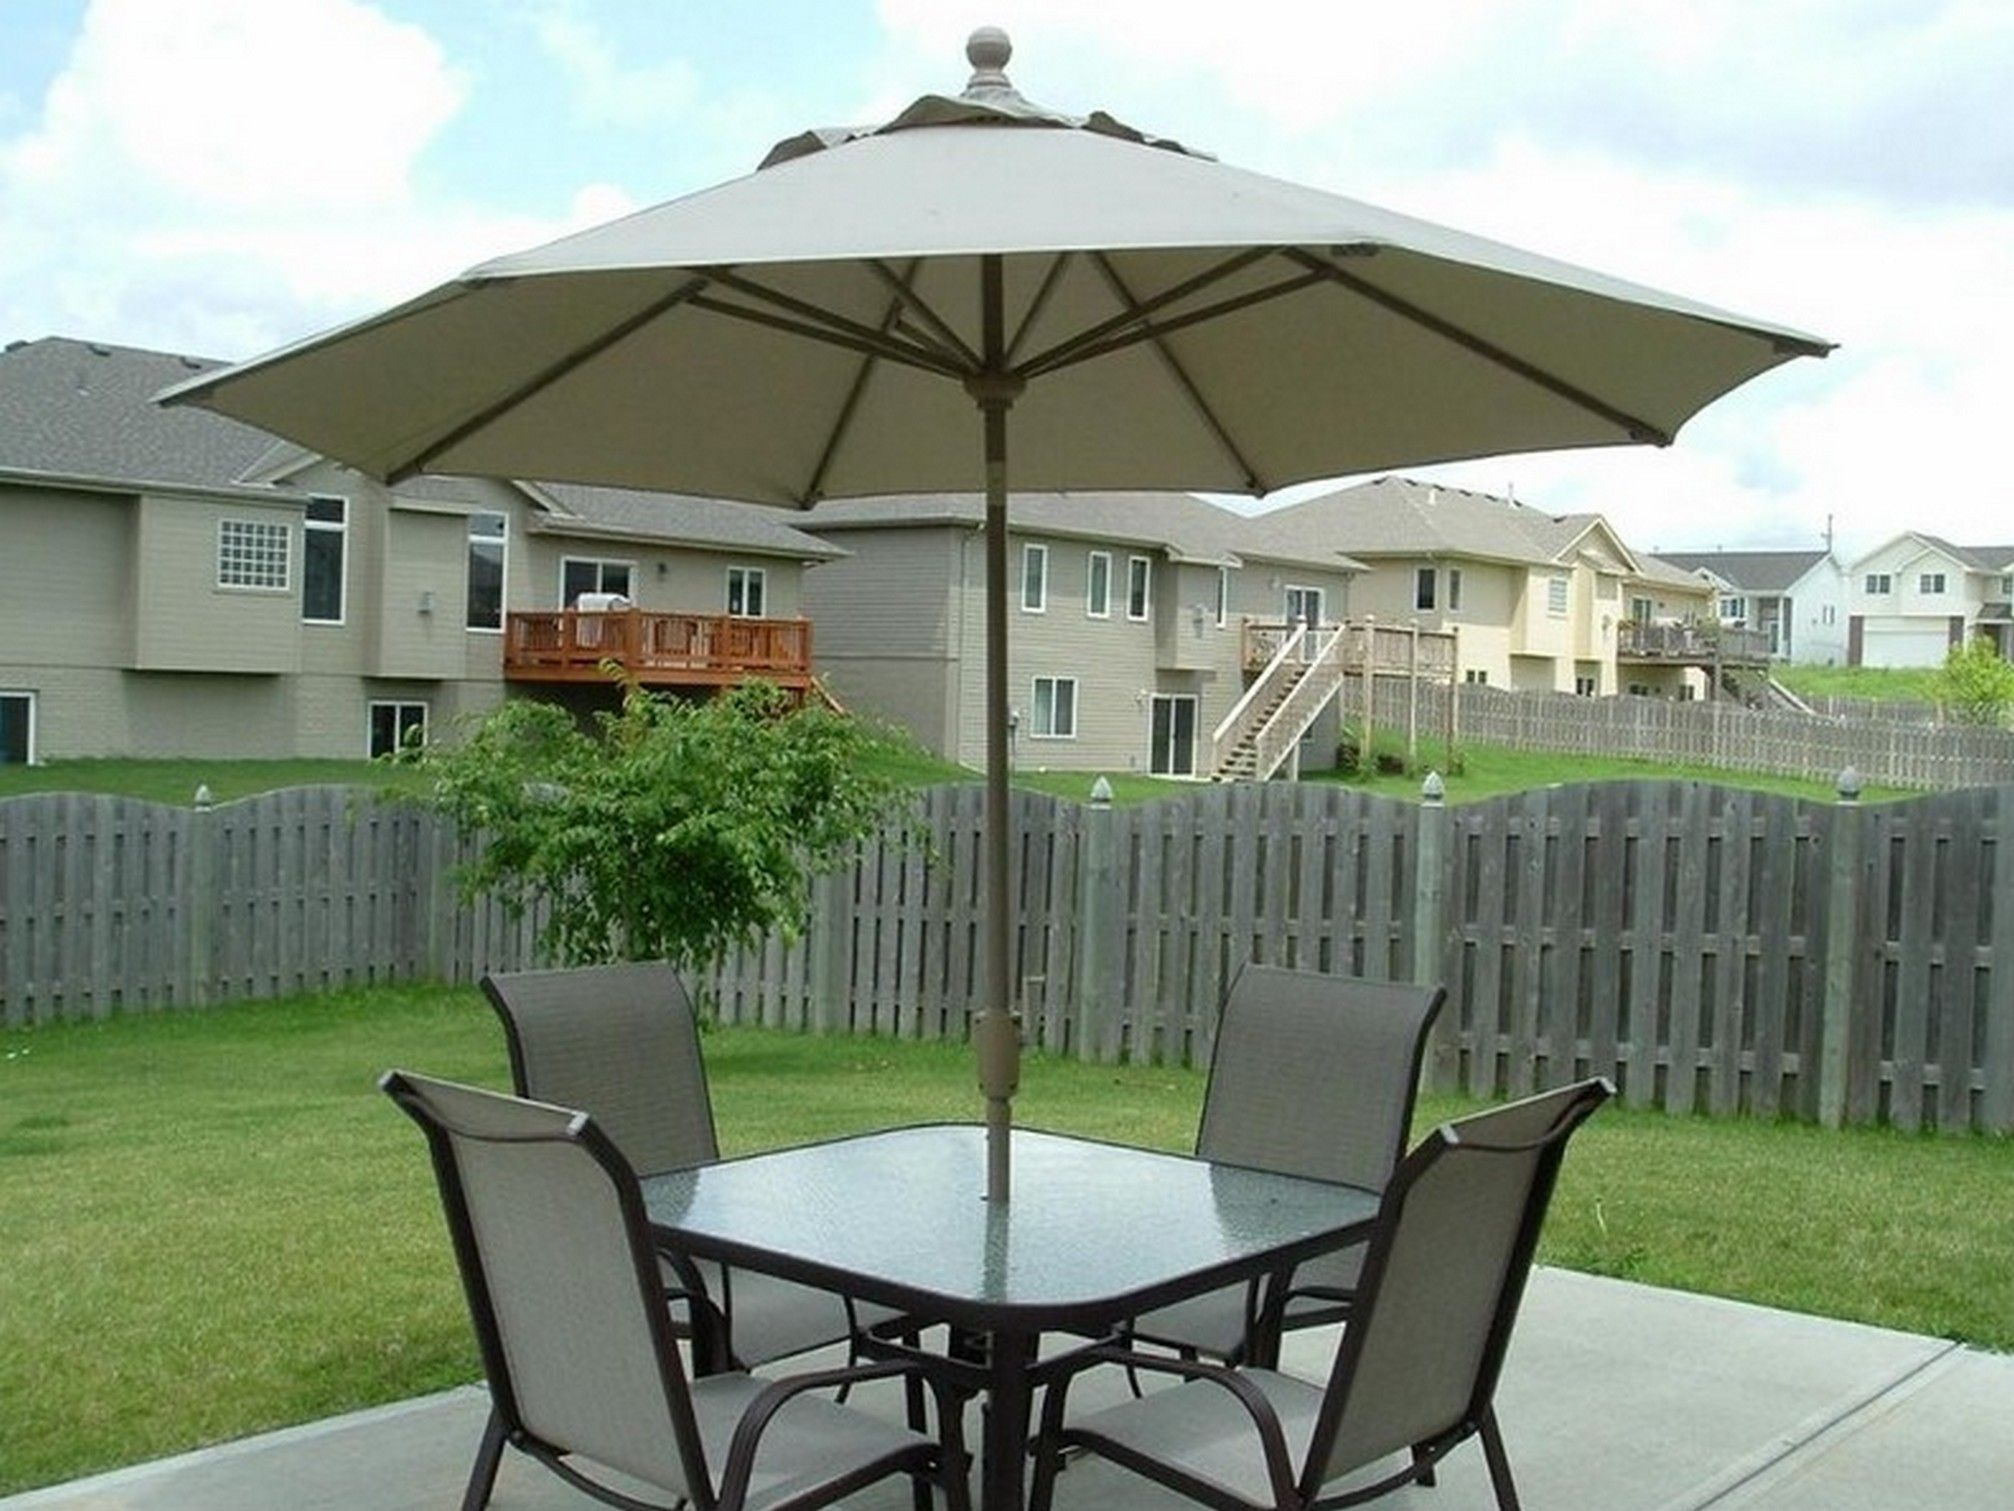 Small Patio Umbrella With Patio Furniture Set And Green Grass Also Fence Jpg 2014 1511 Patio Set With Umbrella Outdoor Patio Set Patio